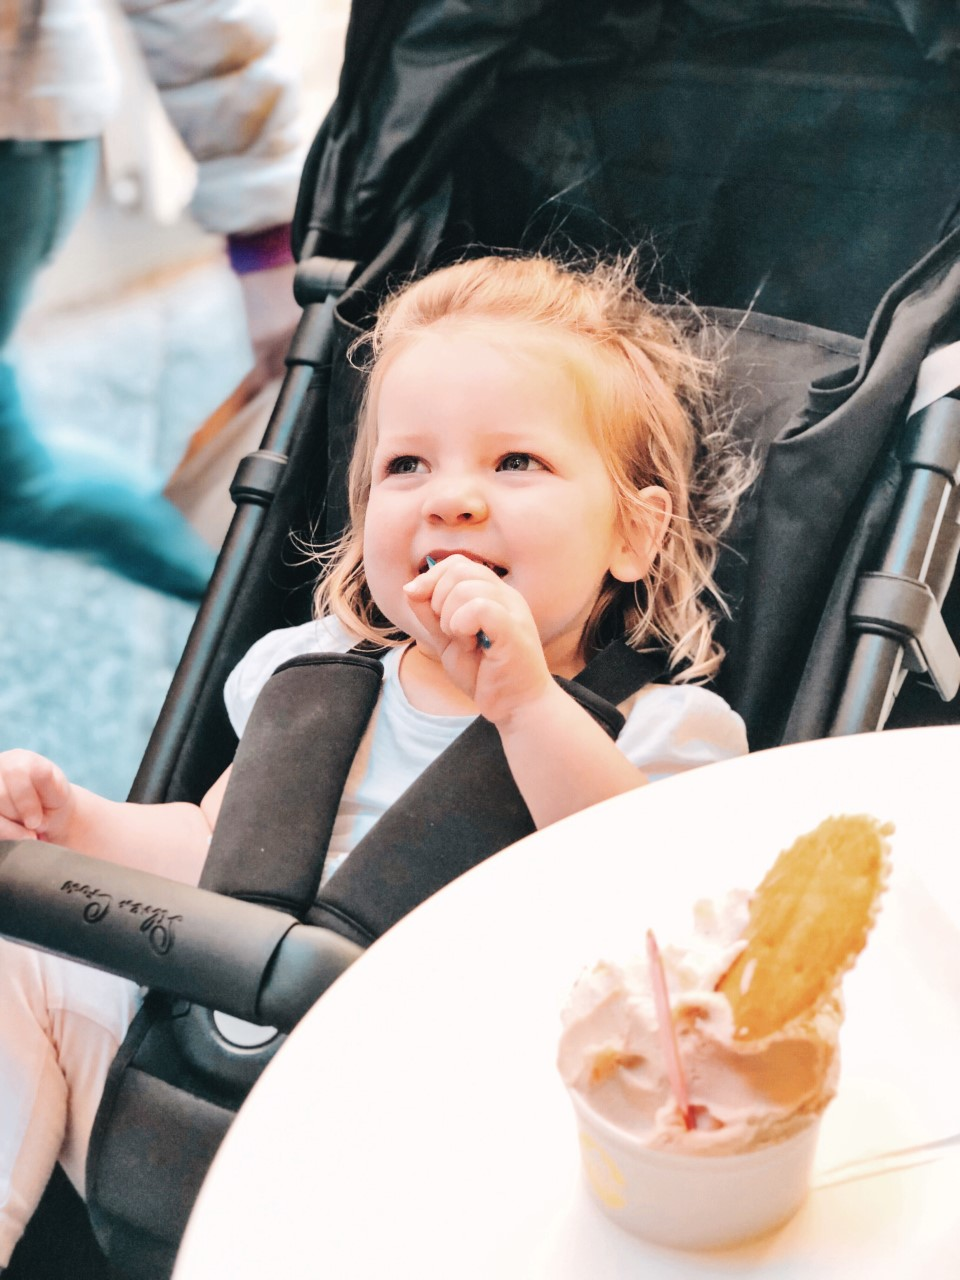 Toddler enjoying Gelato - Italy